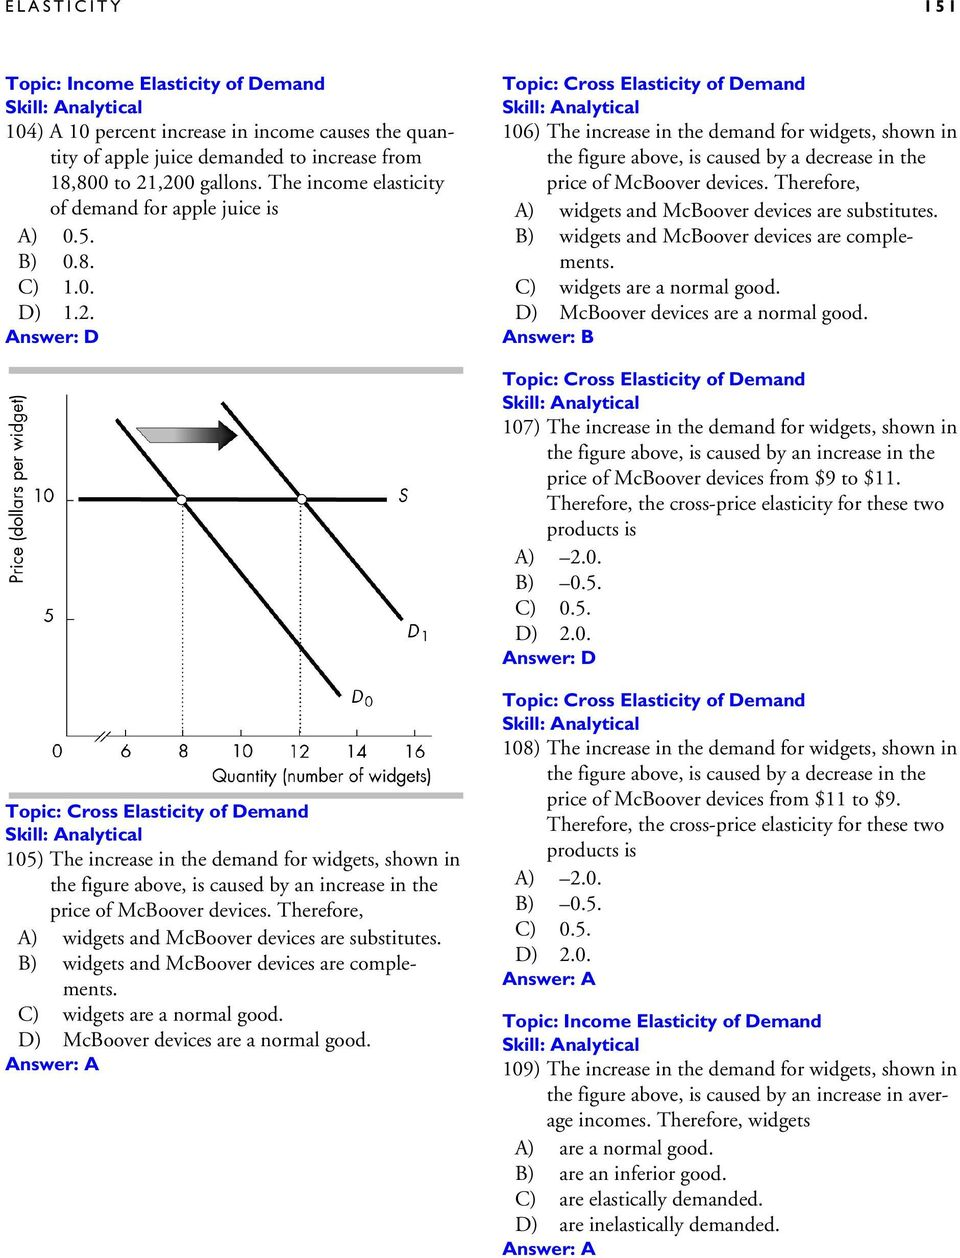 4 Elasticity Chapter Price Elasticity Of Demand A More Elastic